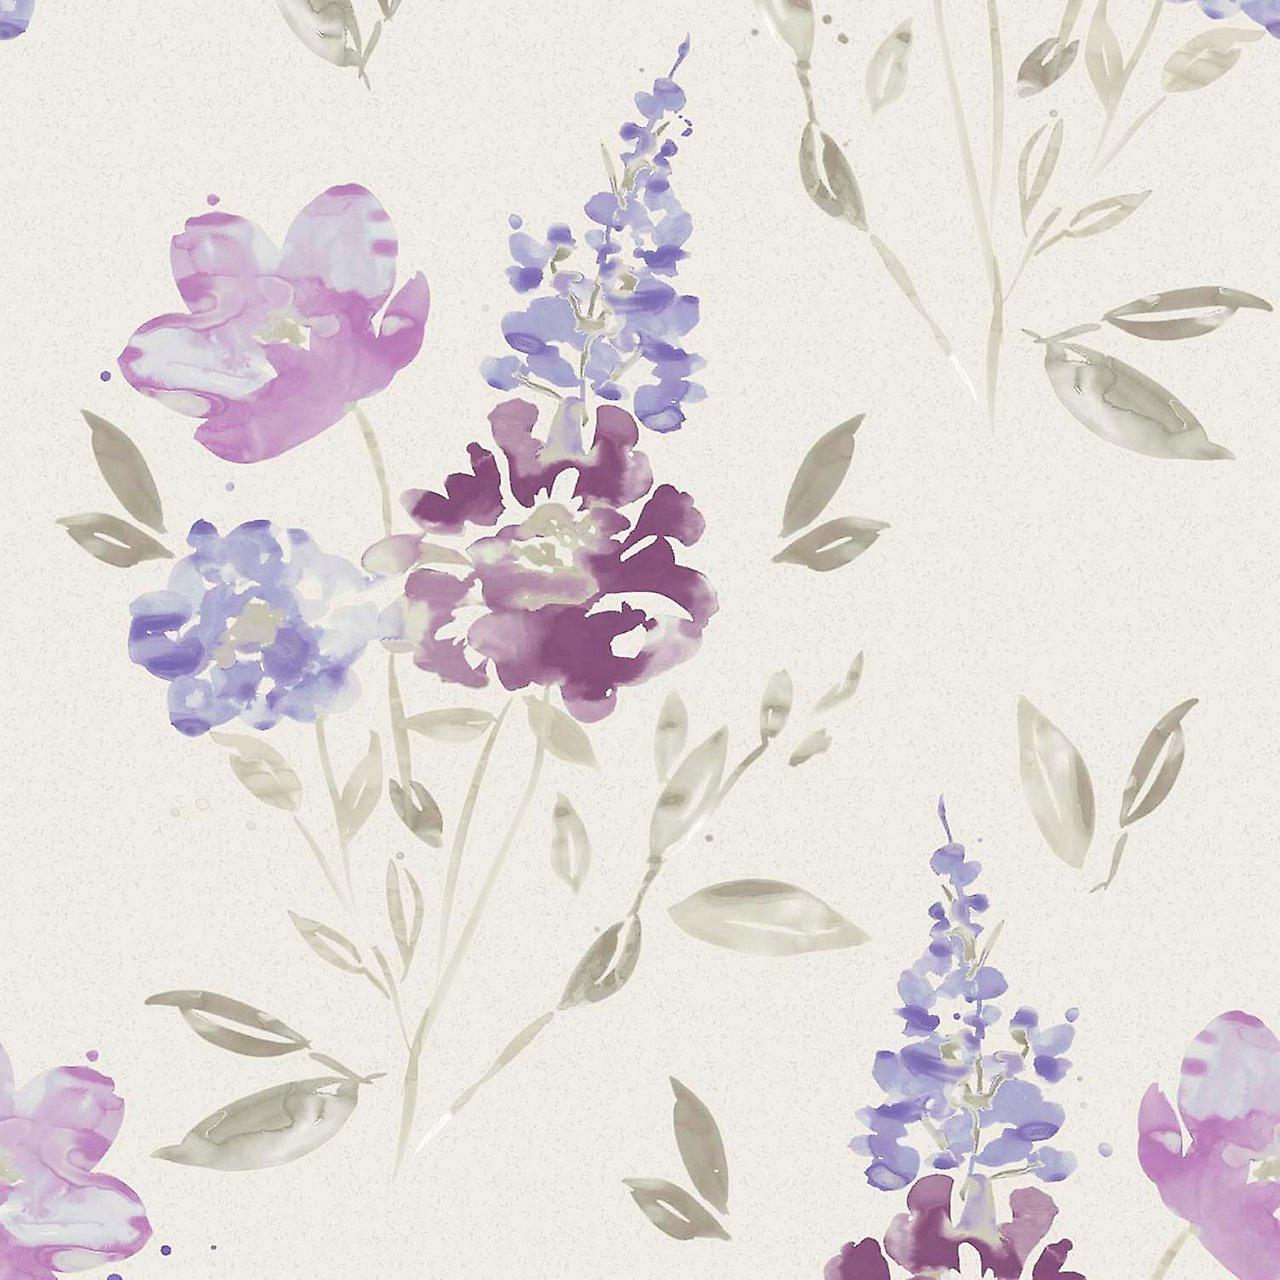 Flower Wallpaper Floral Abstract Watercolour Glitter Vinyl White Purple Taupe